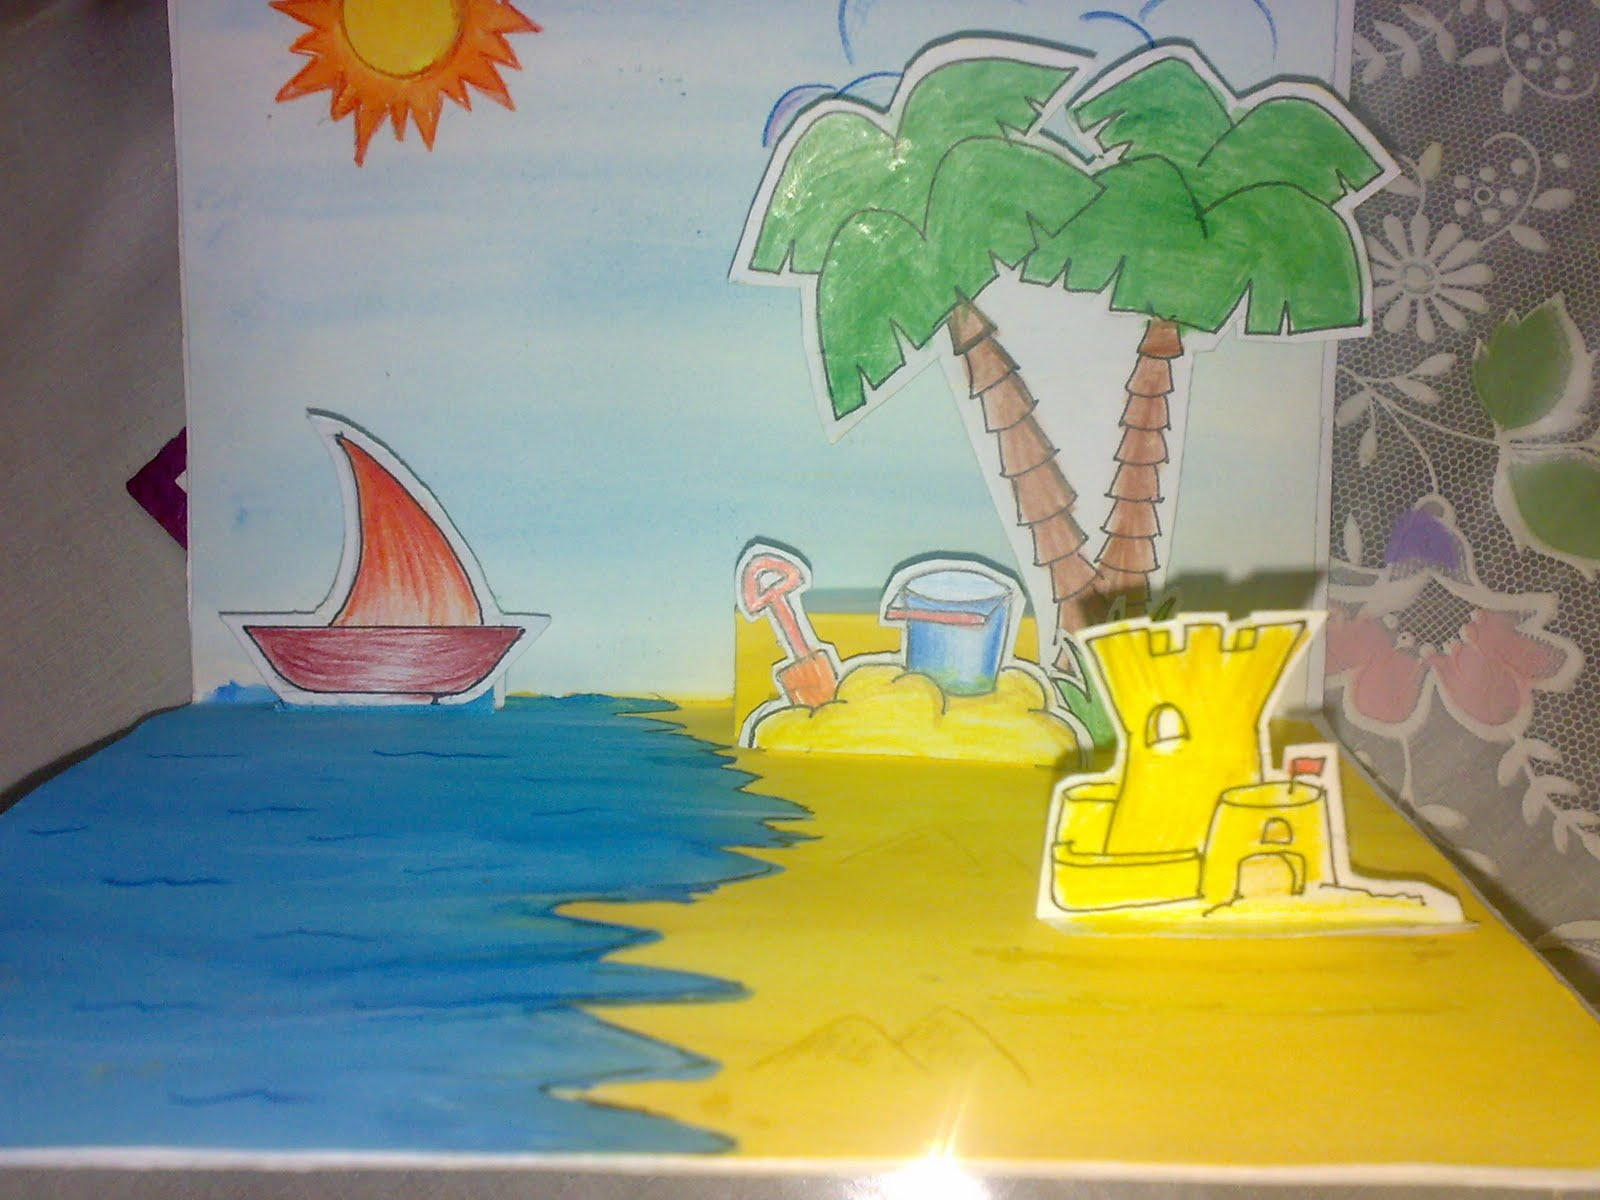 Shreyas creative work pop up greeting card a pop up greeting cardwhich she made for her school art project do notice the sand castles shaded with pencil in the fore ground kristyandbryce Gallery